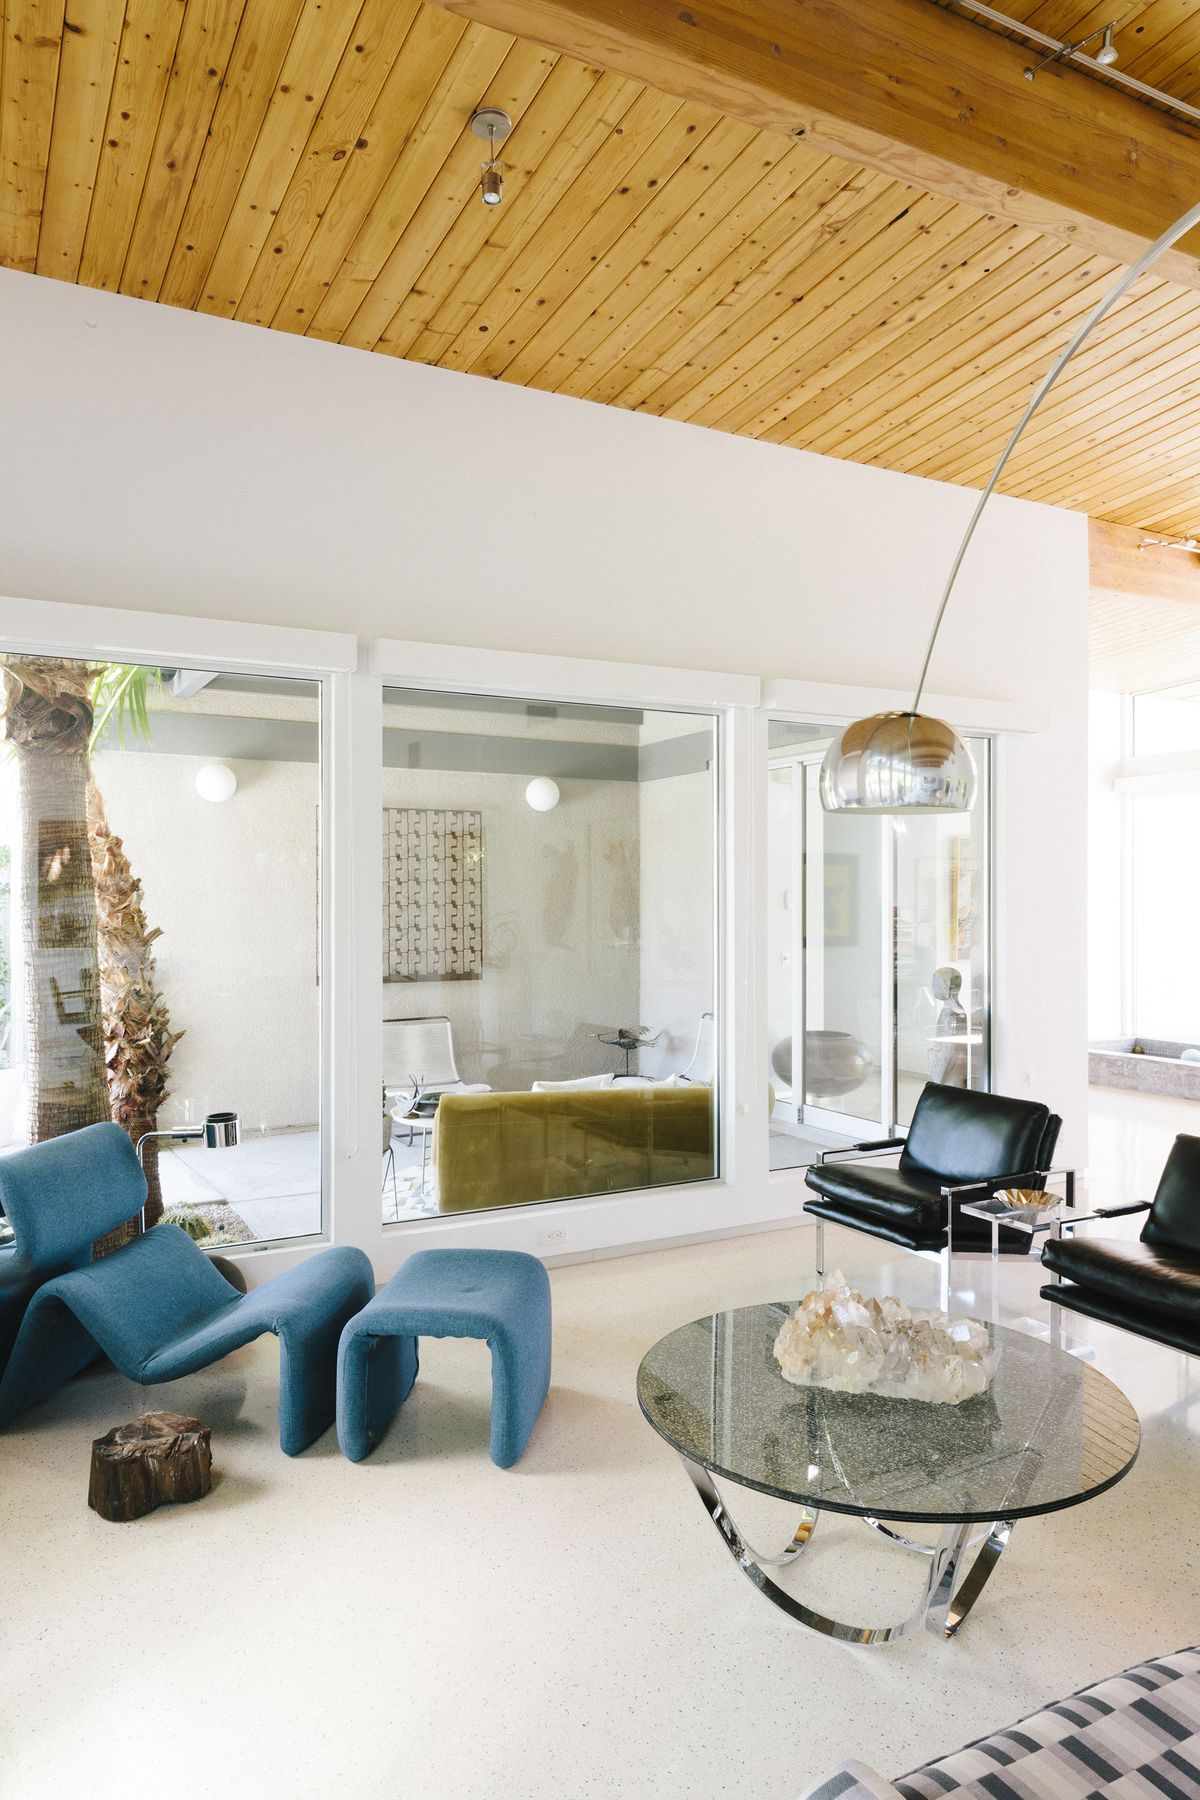 A living area. There is a bright blue lounge chair with a foot rest. There is a glass coffee table and two black chairs. A lamp hangs over the table. The ceiling is wooden. There are glass doors looking into another room